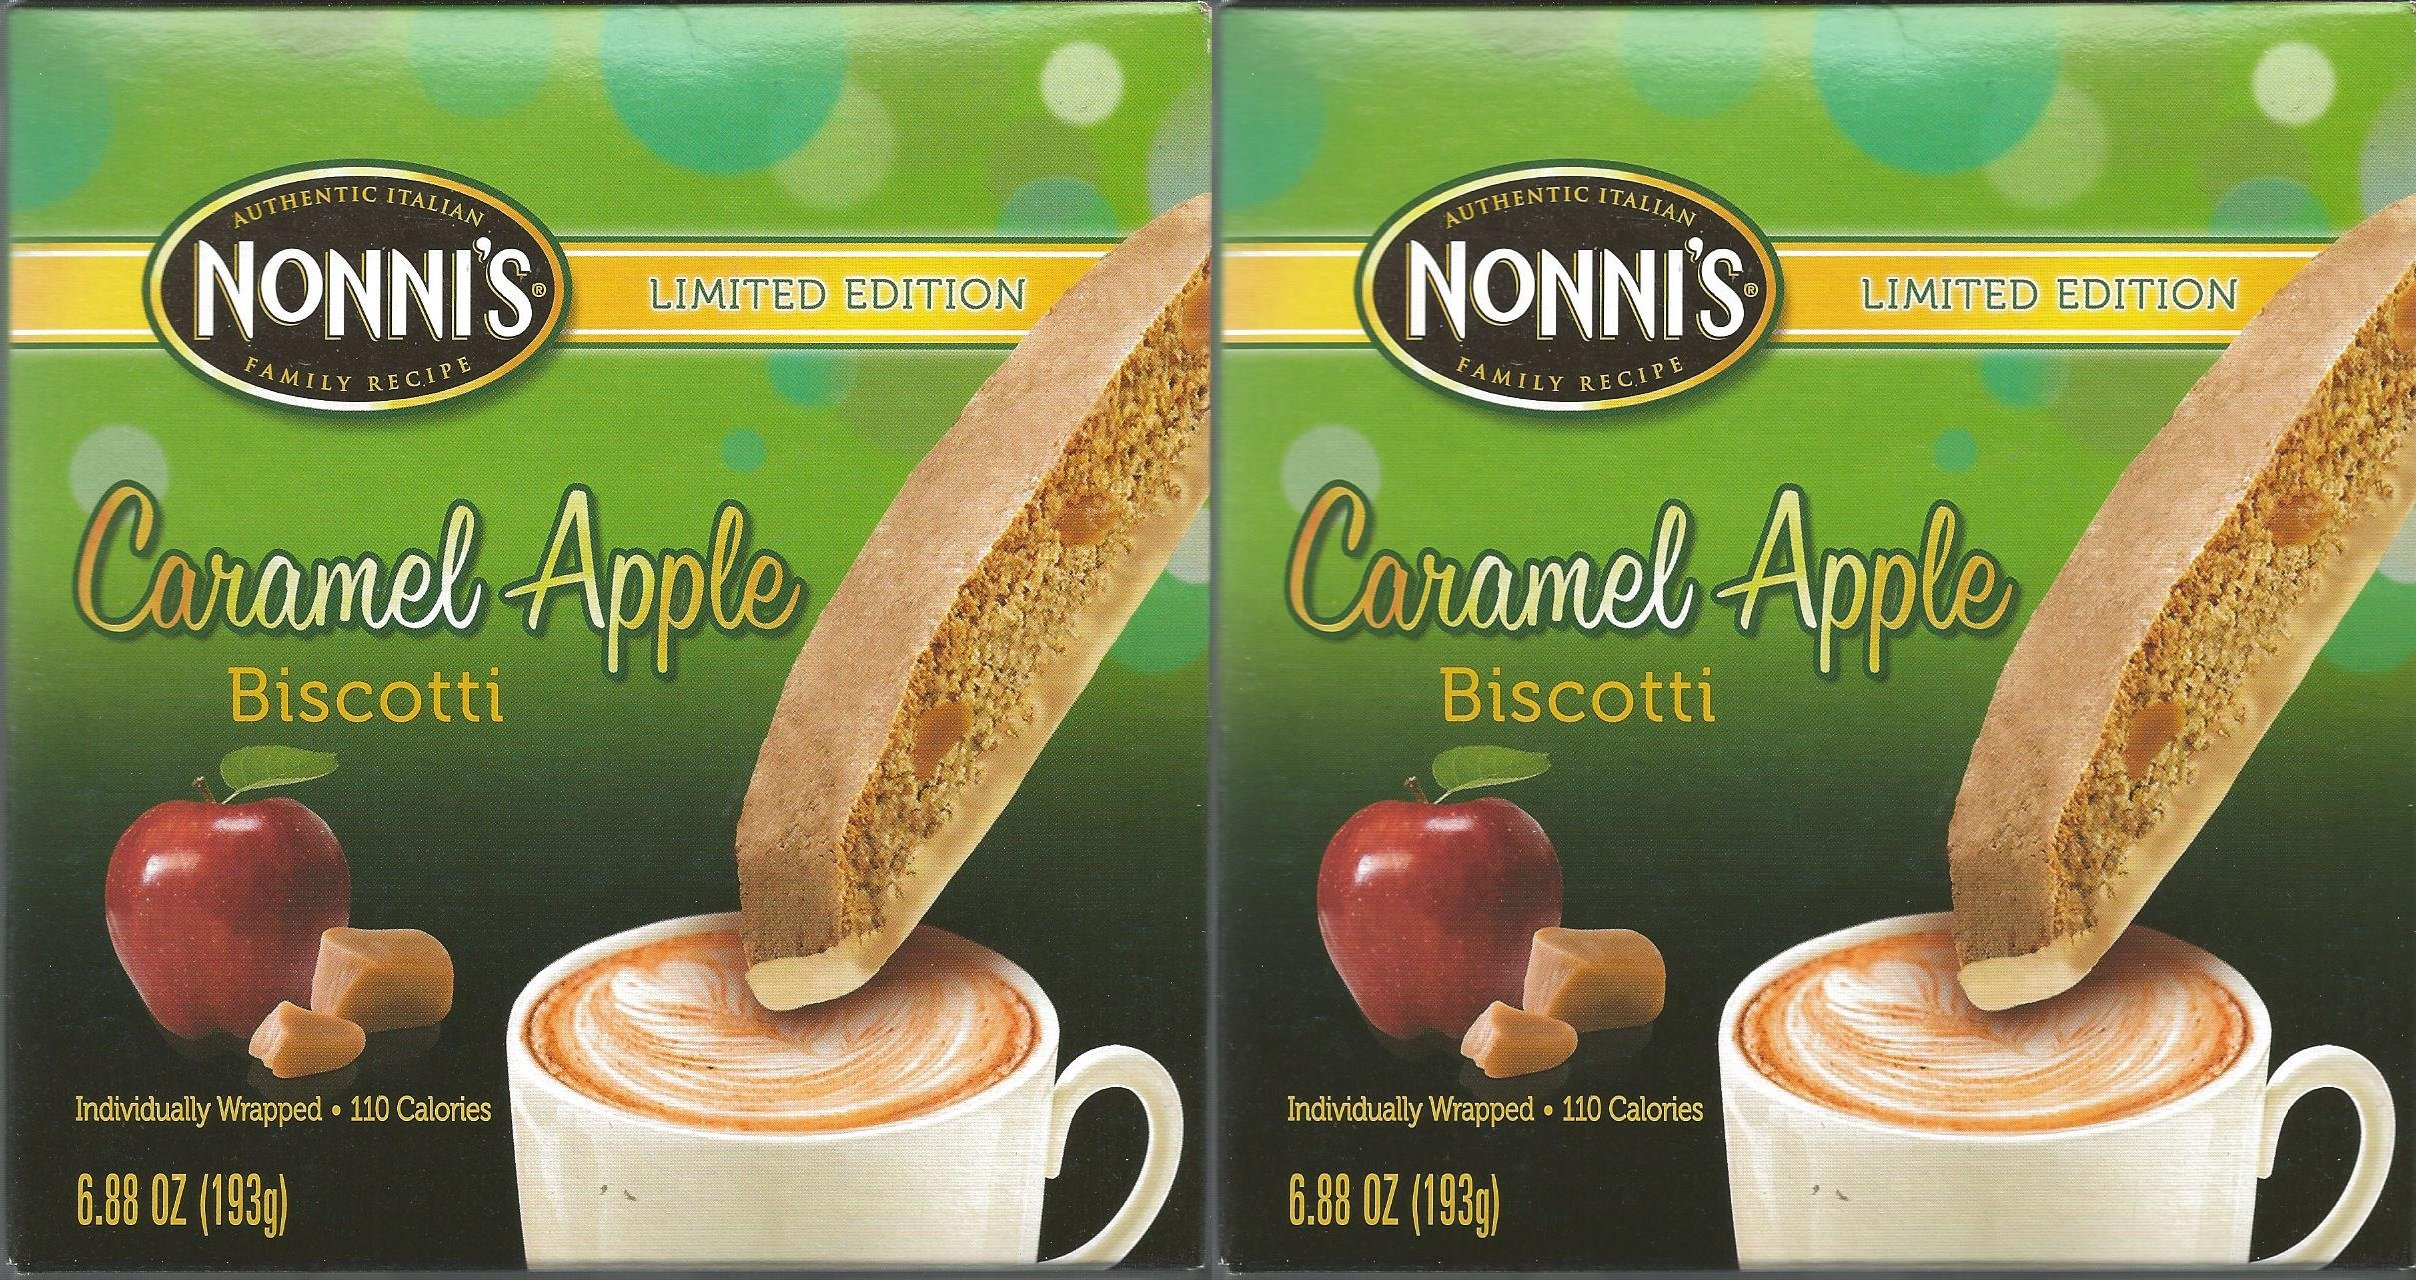 Nonnis Limited Edition Caramel Apple Biscotti Individually Wrapped (Pack of 2)